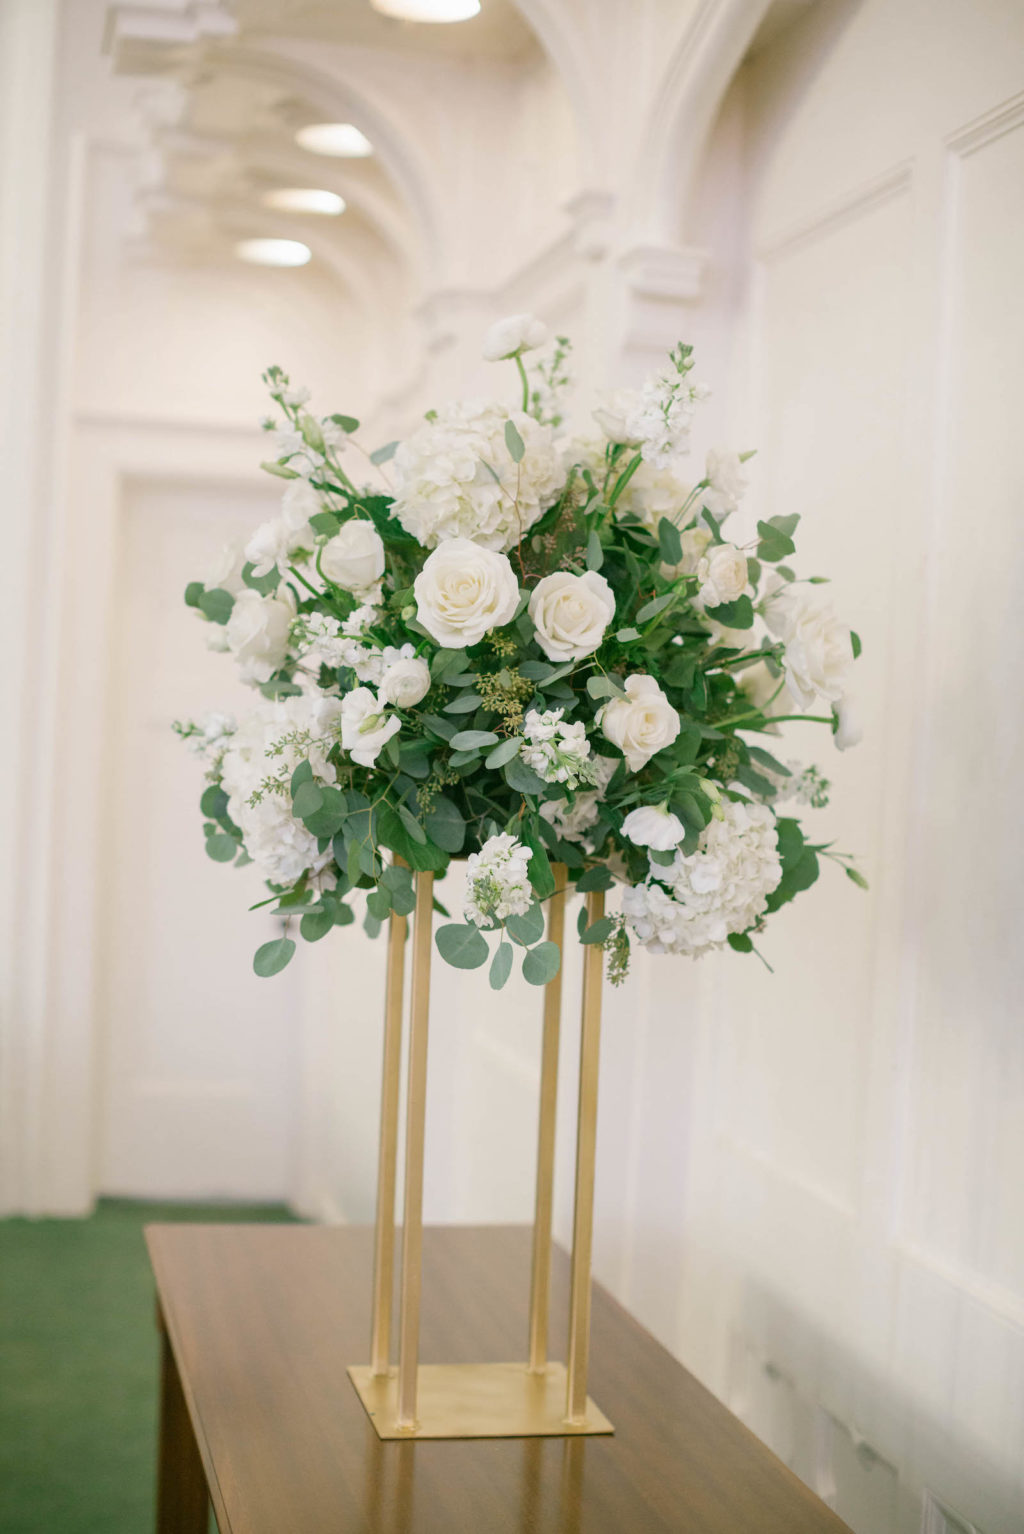 White Roses with Greenery Wedding Centerpieces | Gold Tall Floral Stand for Wedding Centerpieces | Tampa Wedding Florist FH Events